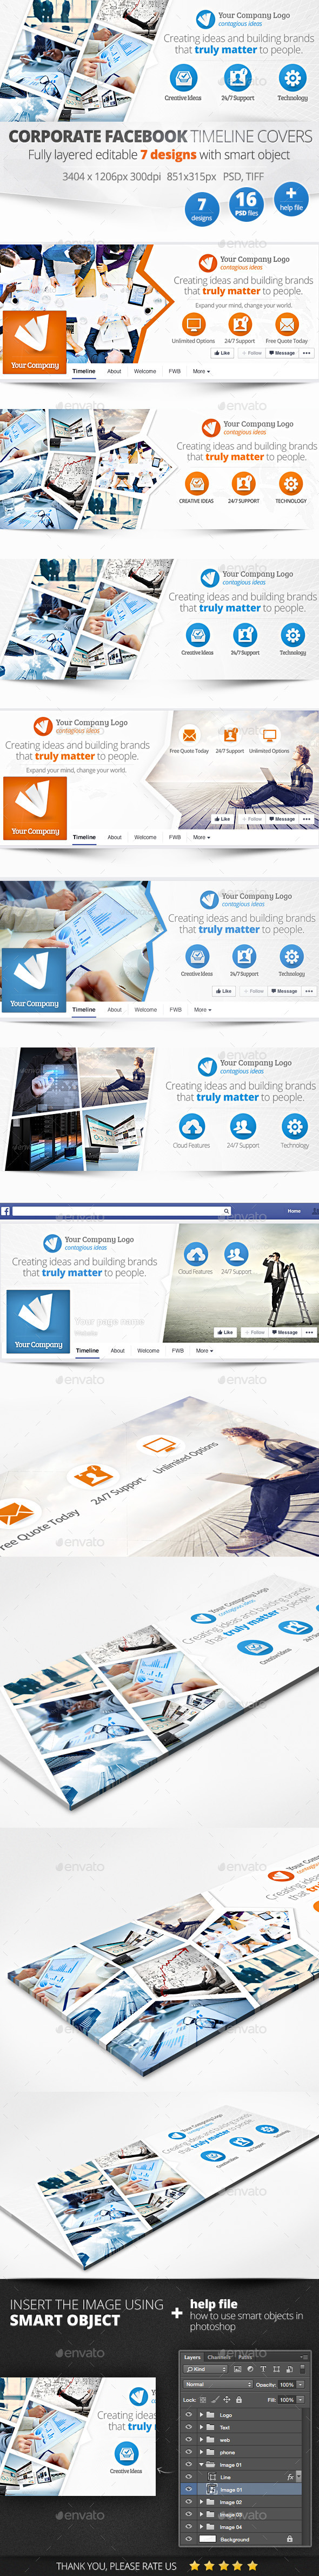 GraphicRiver Corporate Facebook Timeline Covers 11211203